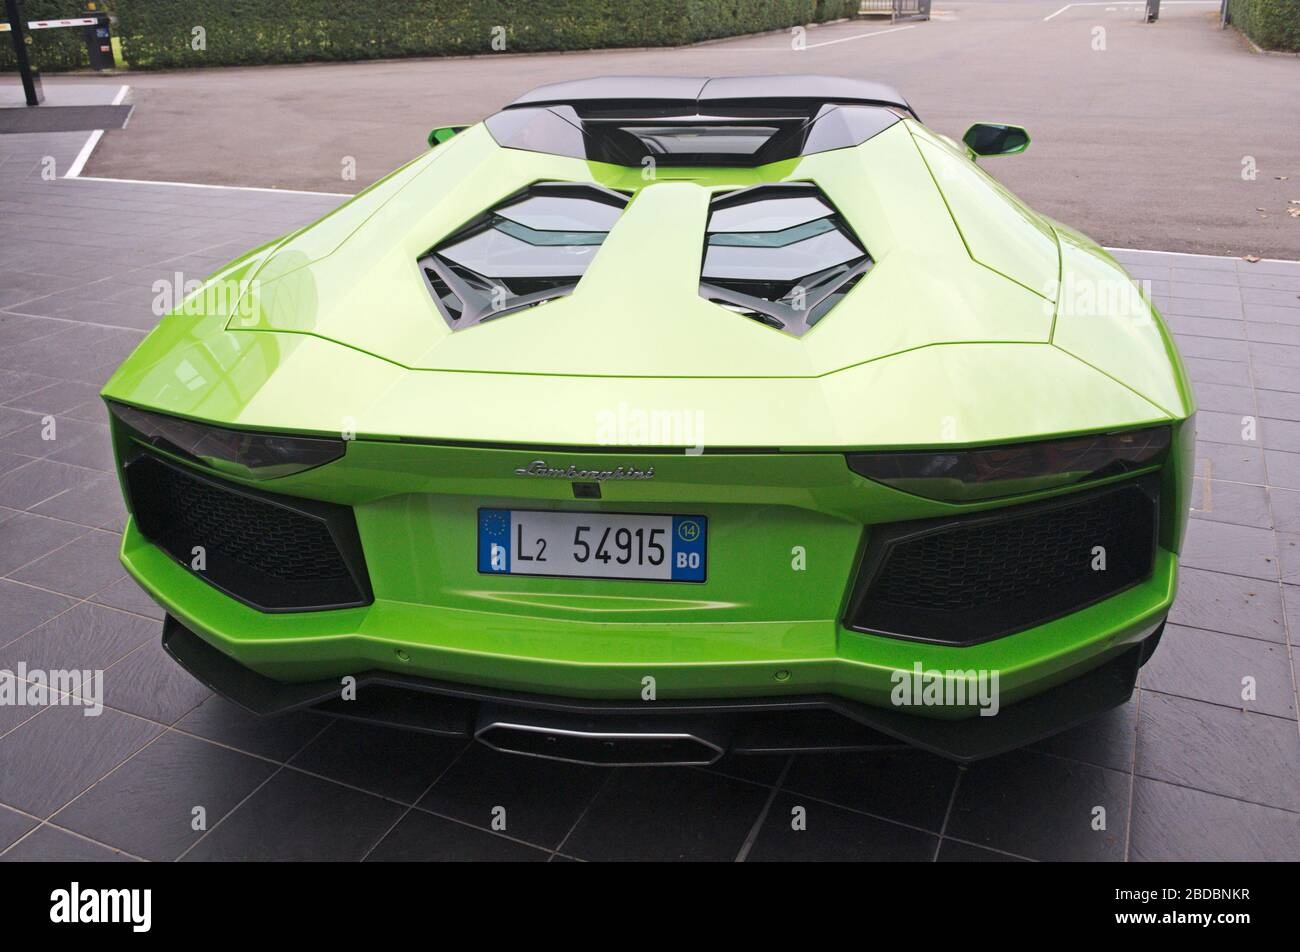 Lamborghini Rear View High Resolution Stock Photography And Images Alamy